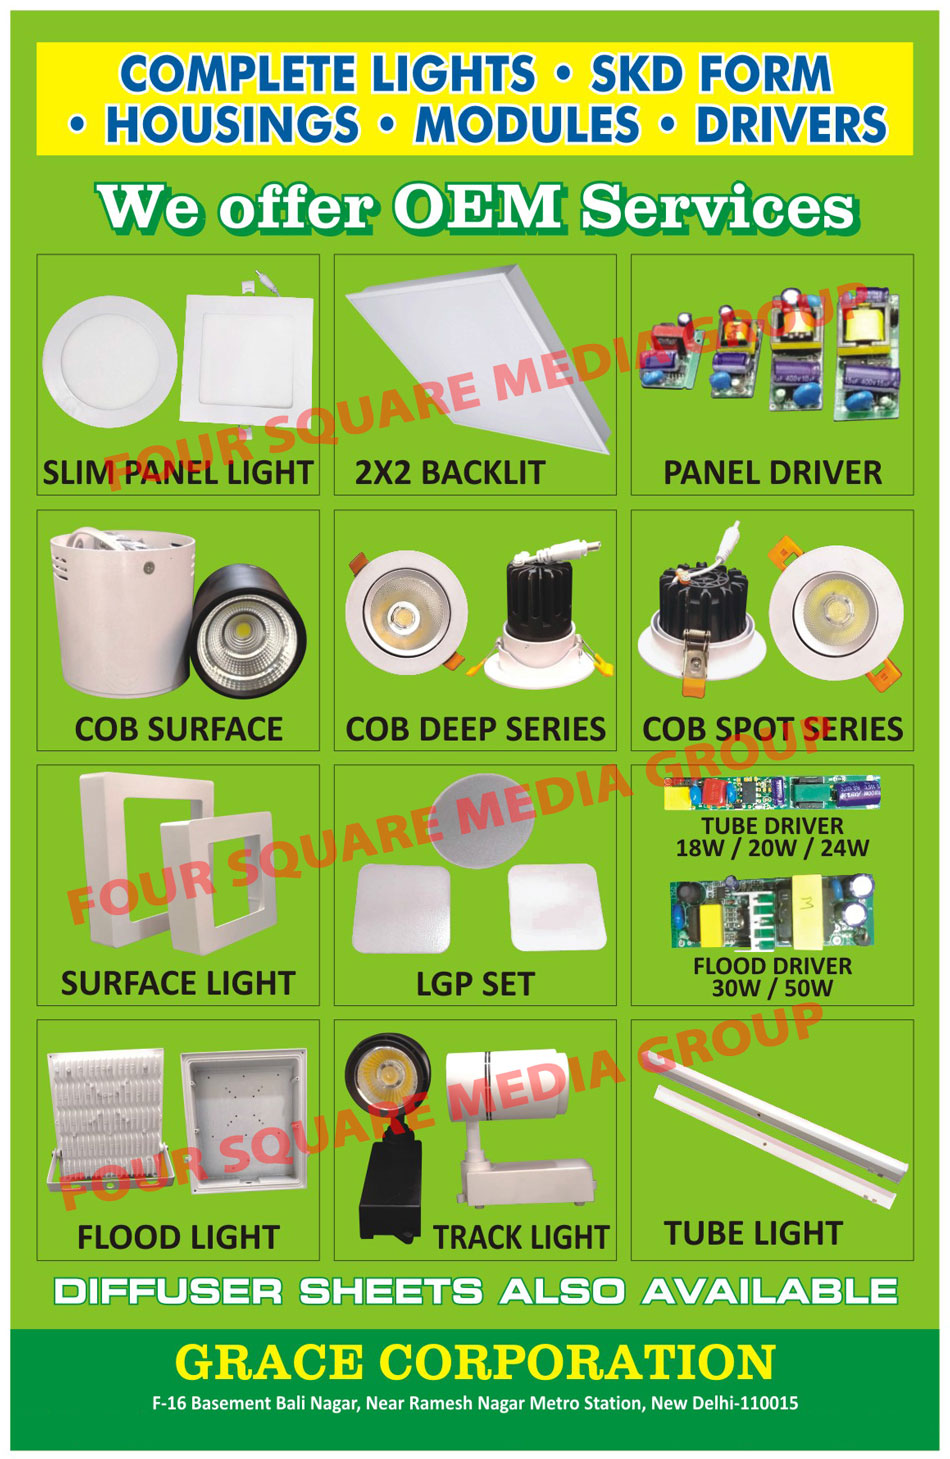 Led Lights Drivers Light Housing Tube Circuit Images Panels Panel Cob Track Pcb Printed Boards